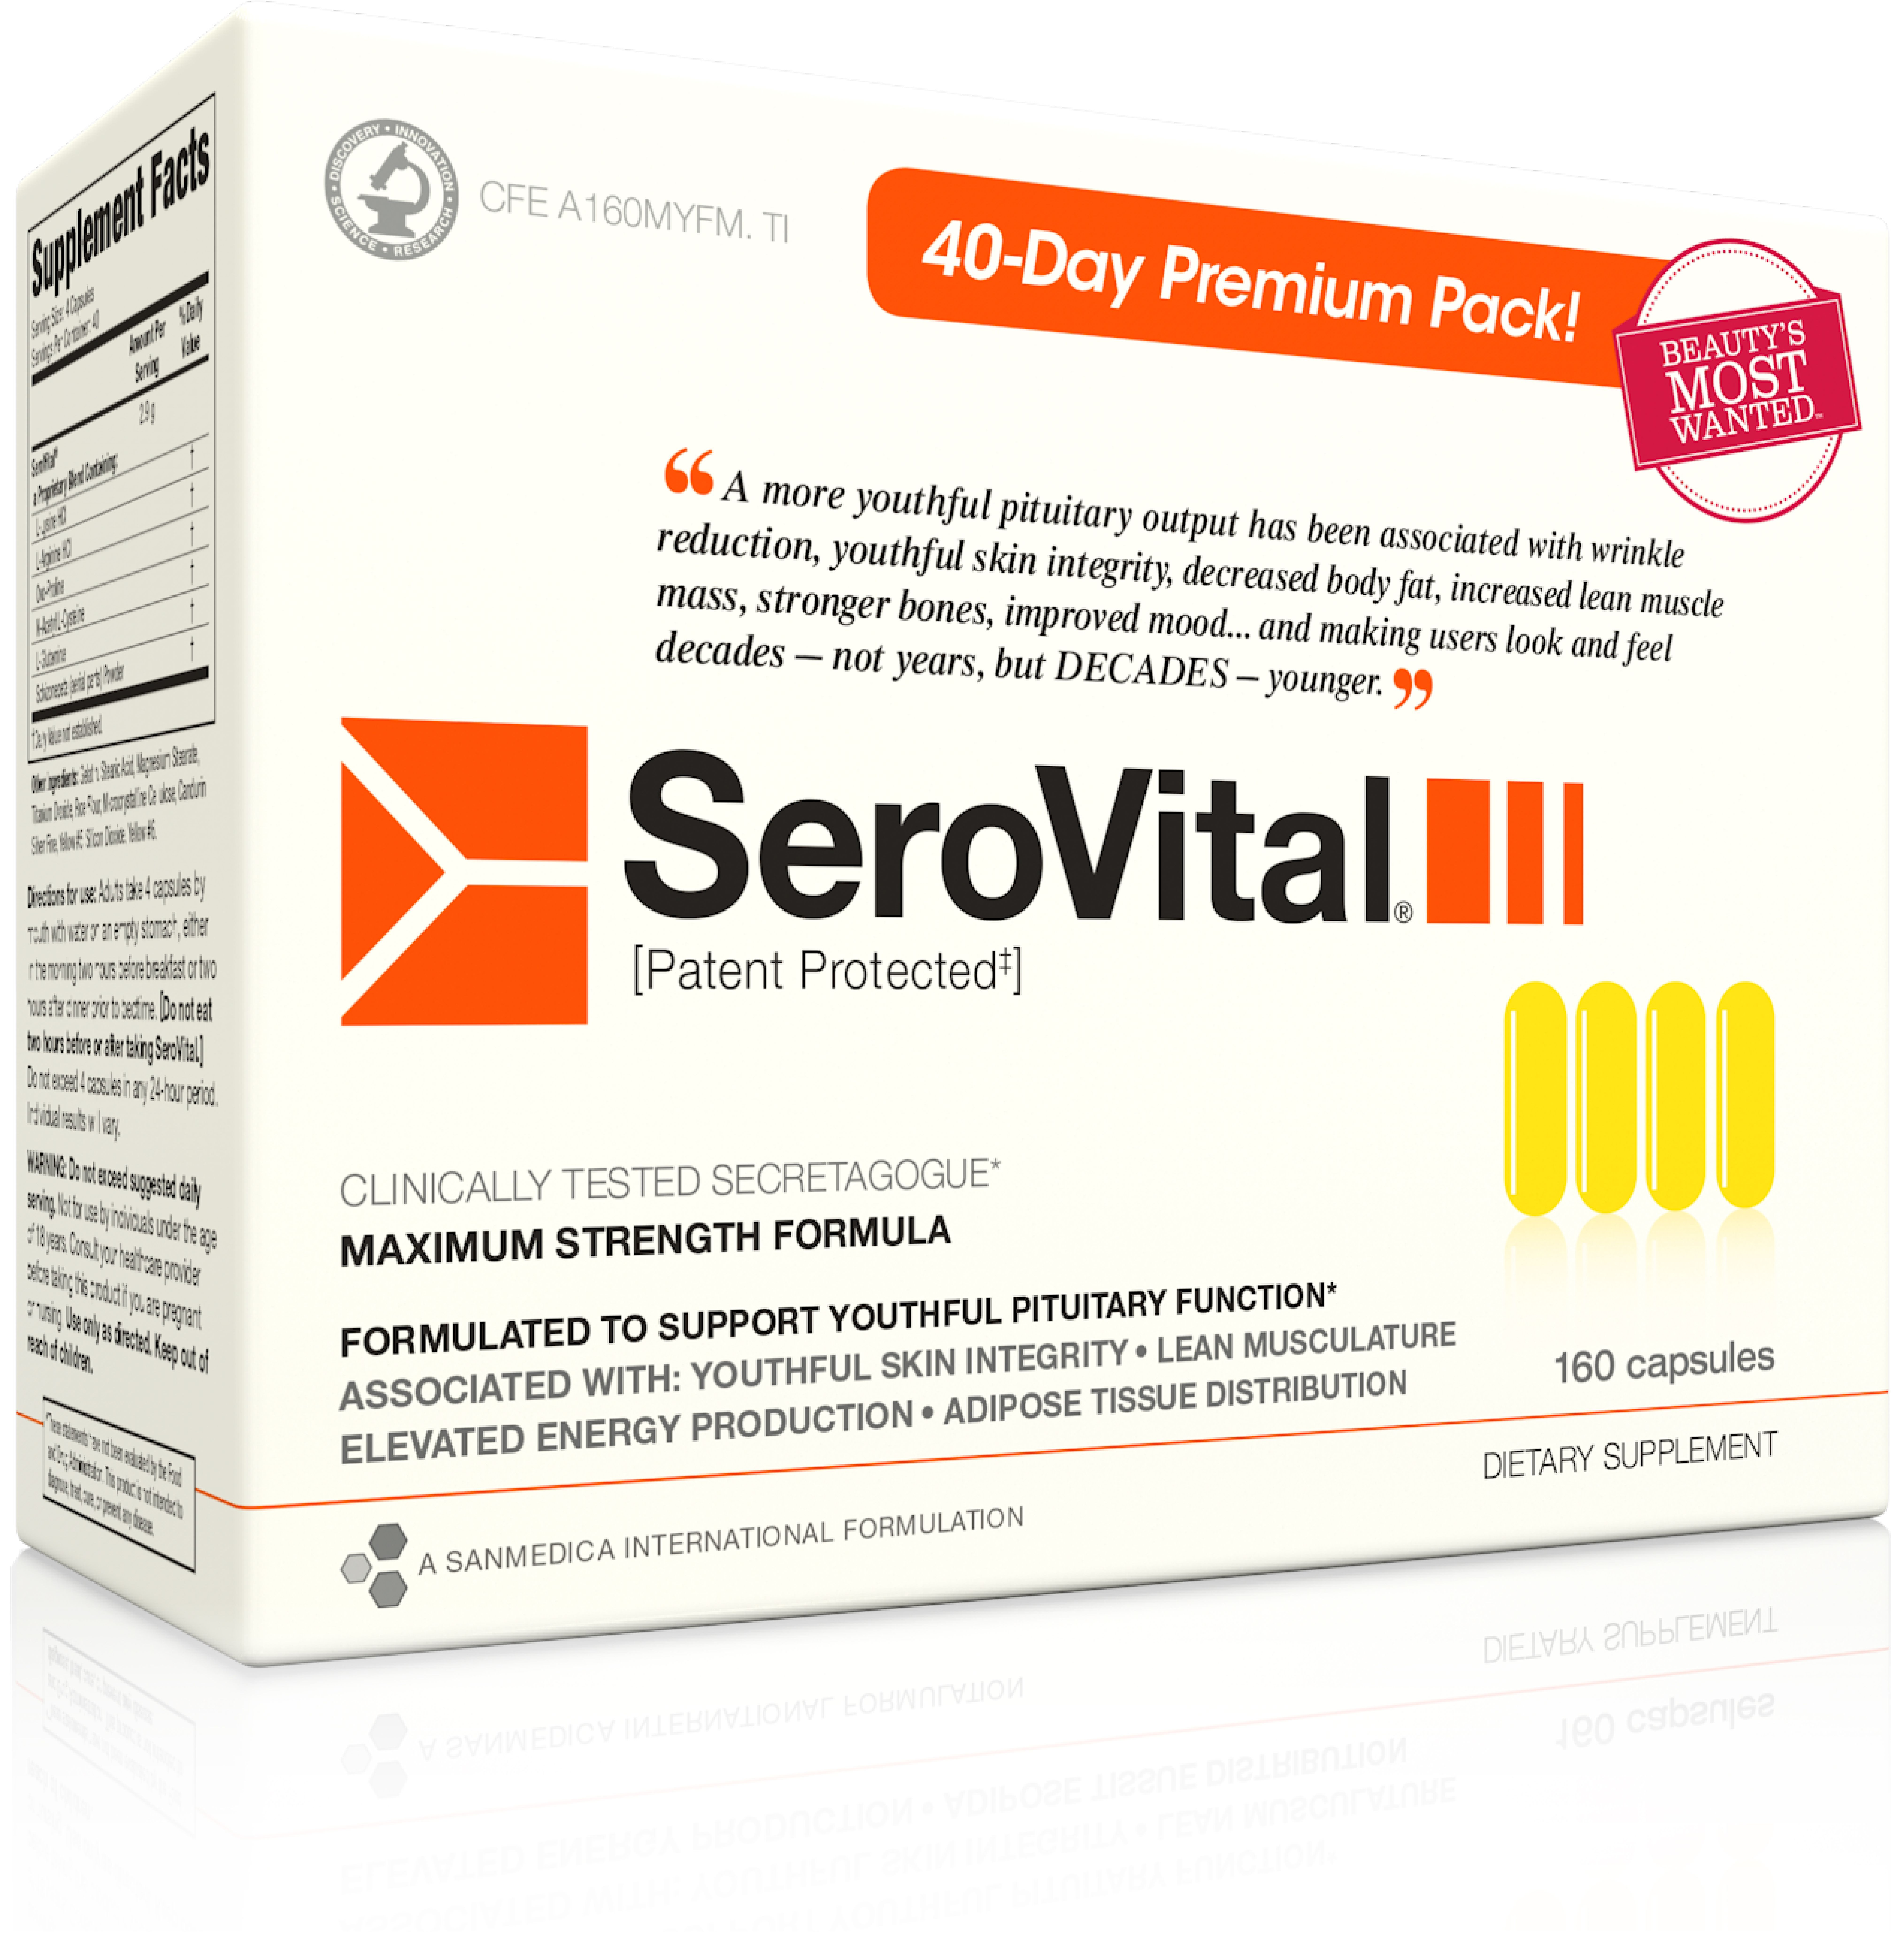 Serovital Dietary Supplement 160 Count